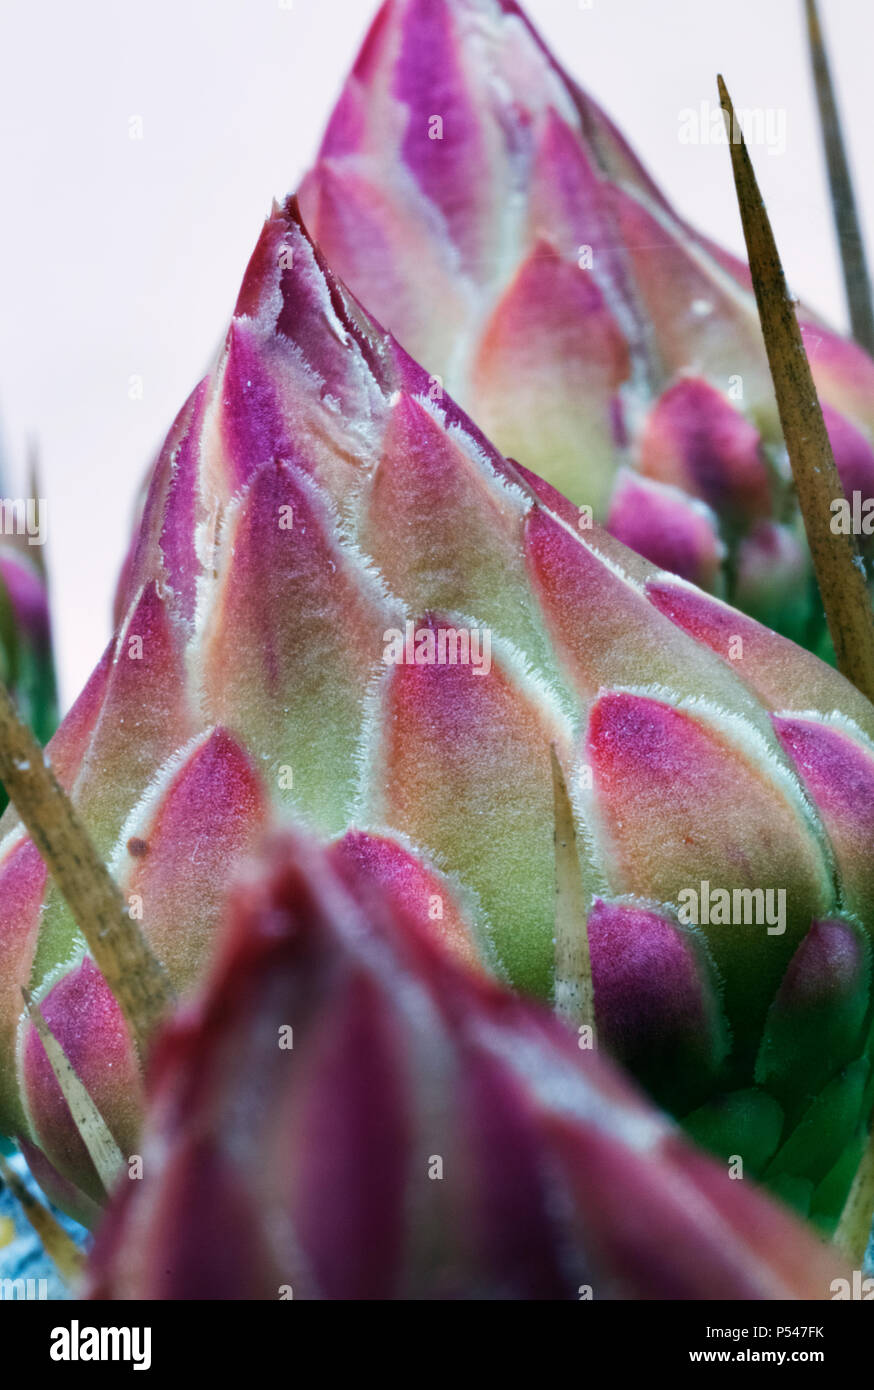 Beautiful Cactus Flowers Macro Photography Delicate Pink Flower